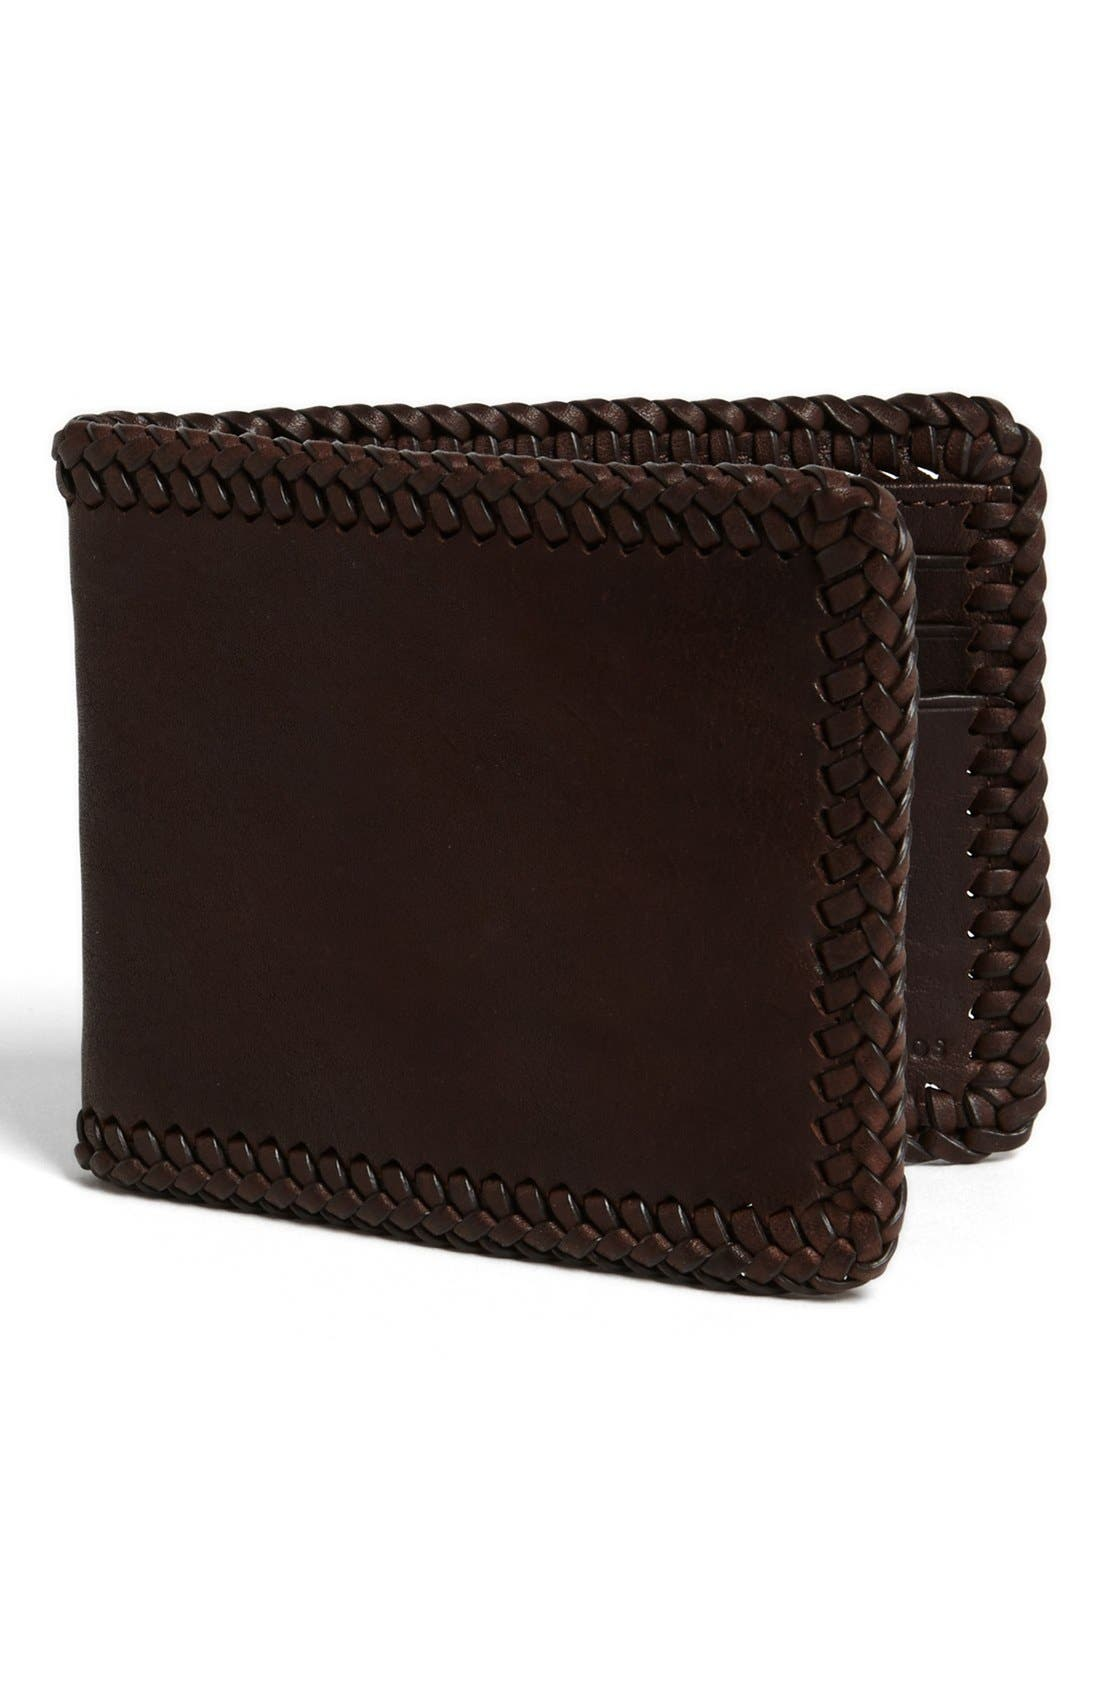 Main Image - John Varvatos Collection Braided Leather Wallet